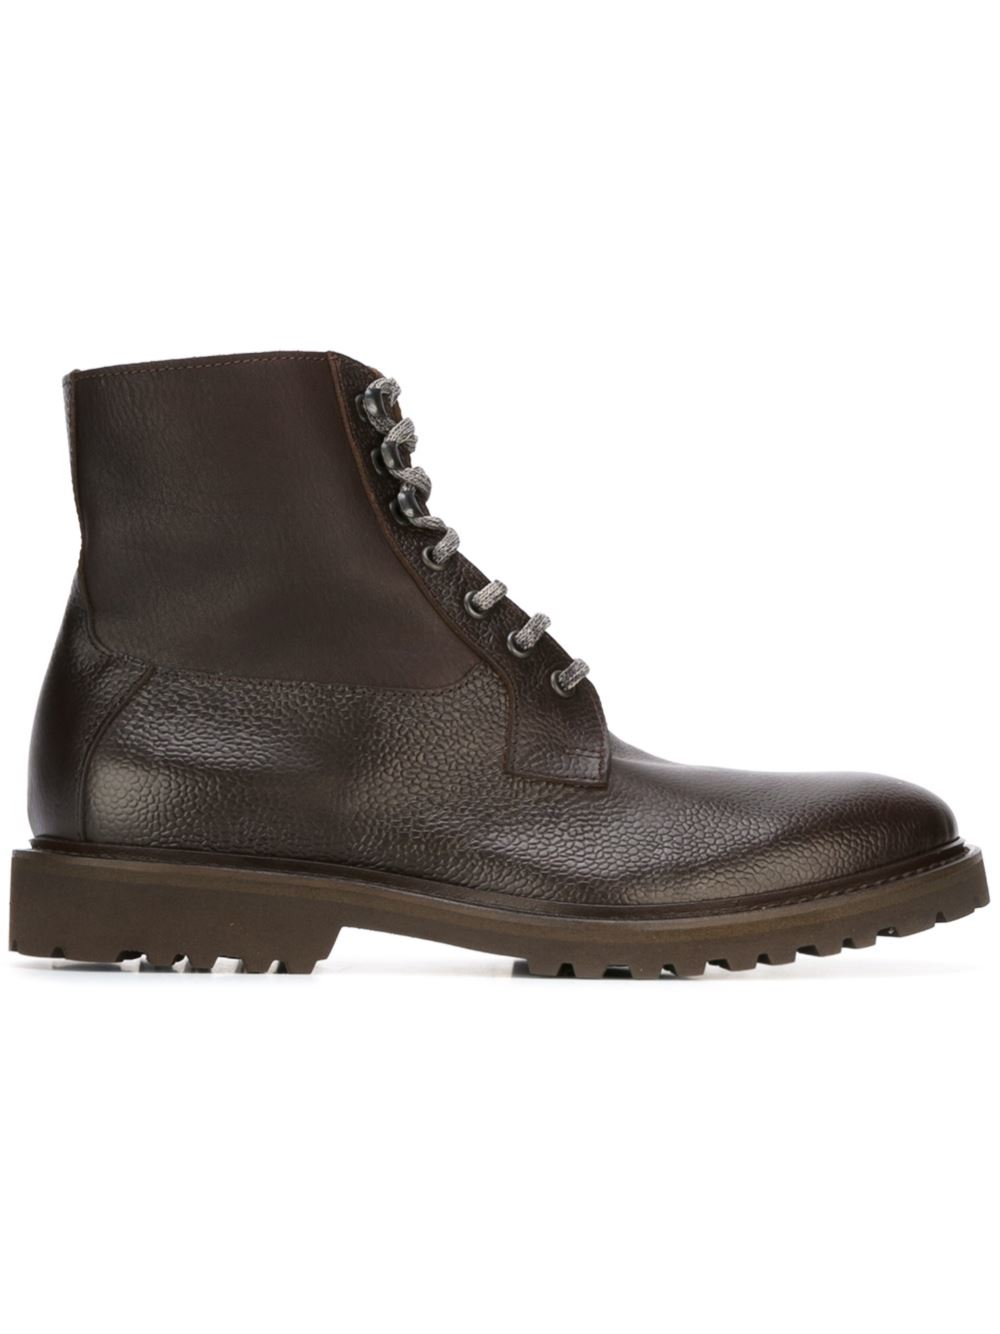 Lyst Eleventy Lace Up Boots In Brown For Men